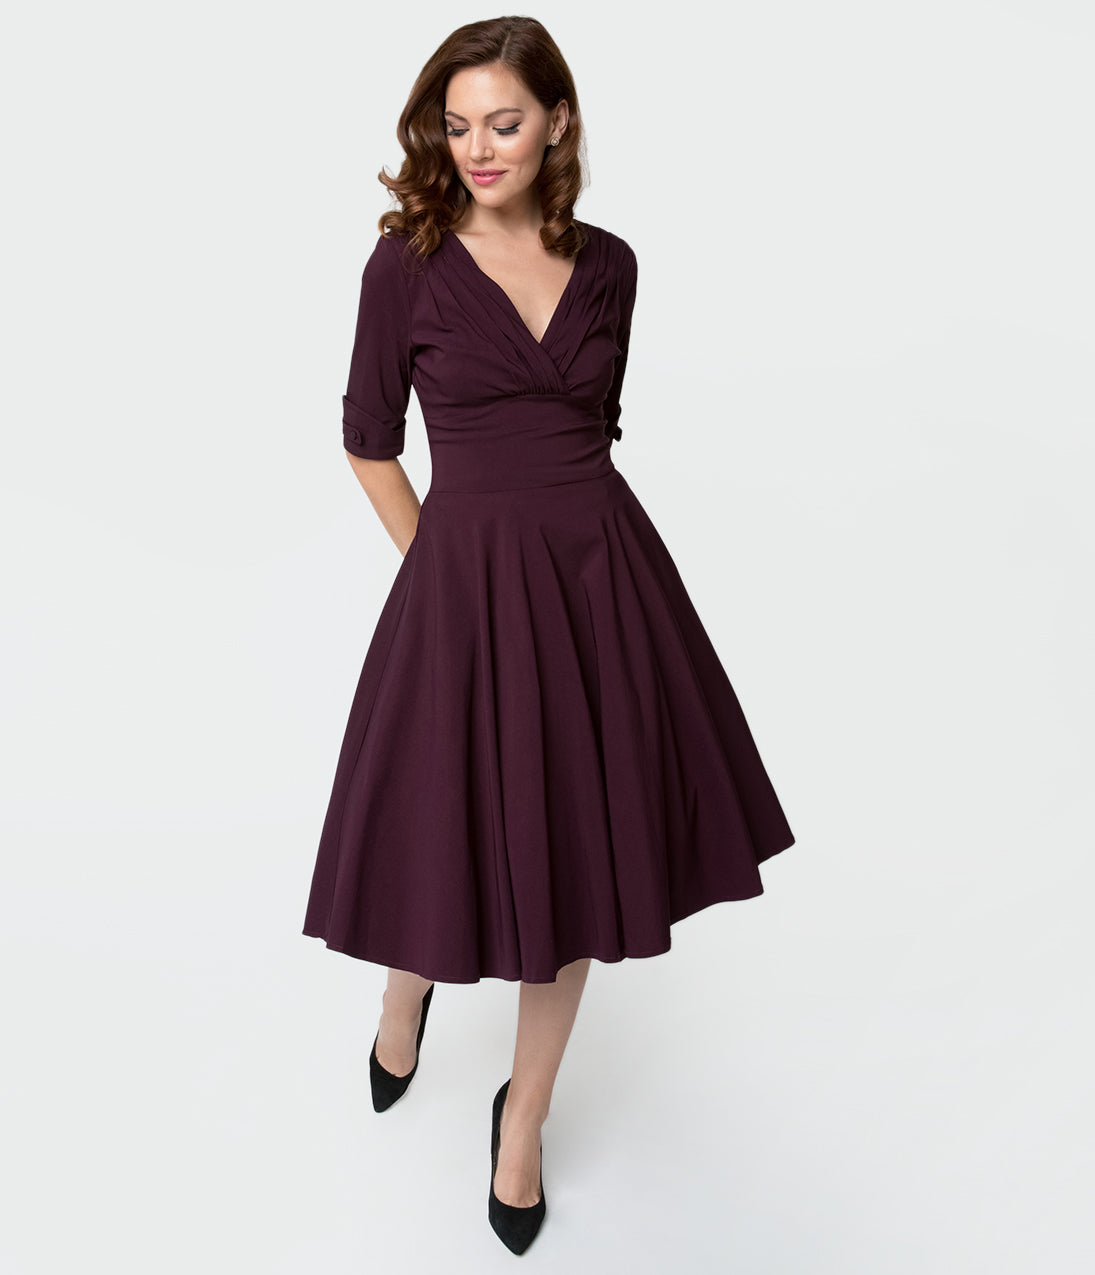 500 Vintage Style Dresses for Sale | Vintage Inspired Dresses Unique Vintage 1950S Eggplant Purple Delores Swing Dress With Sleeves $88.00 AT vintagedancer.com